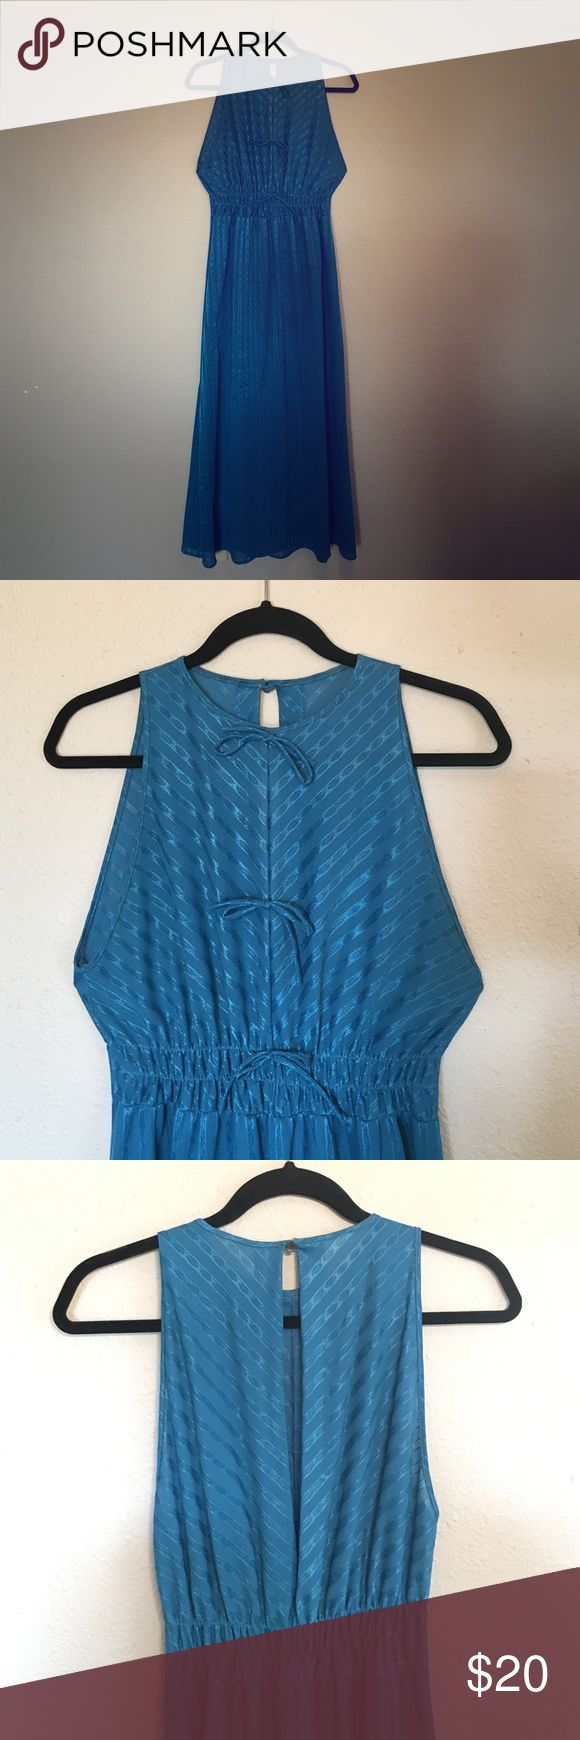 vintage blue on blue chevron maxi dress Gorgeous cerulean blue maxi dress. 70's disco dancing queen! Throw on some platforms and gold hoop earrings and get on the dance floor! Dresses Maxi